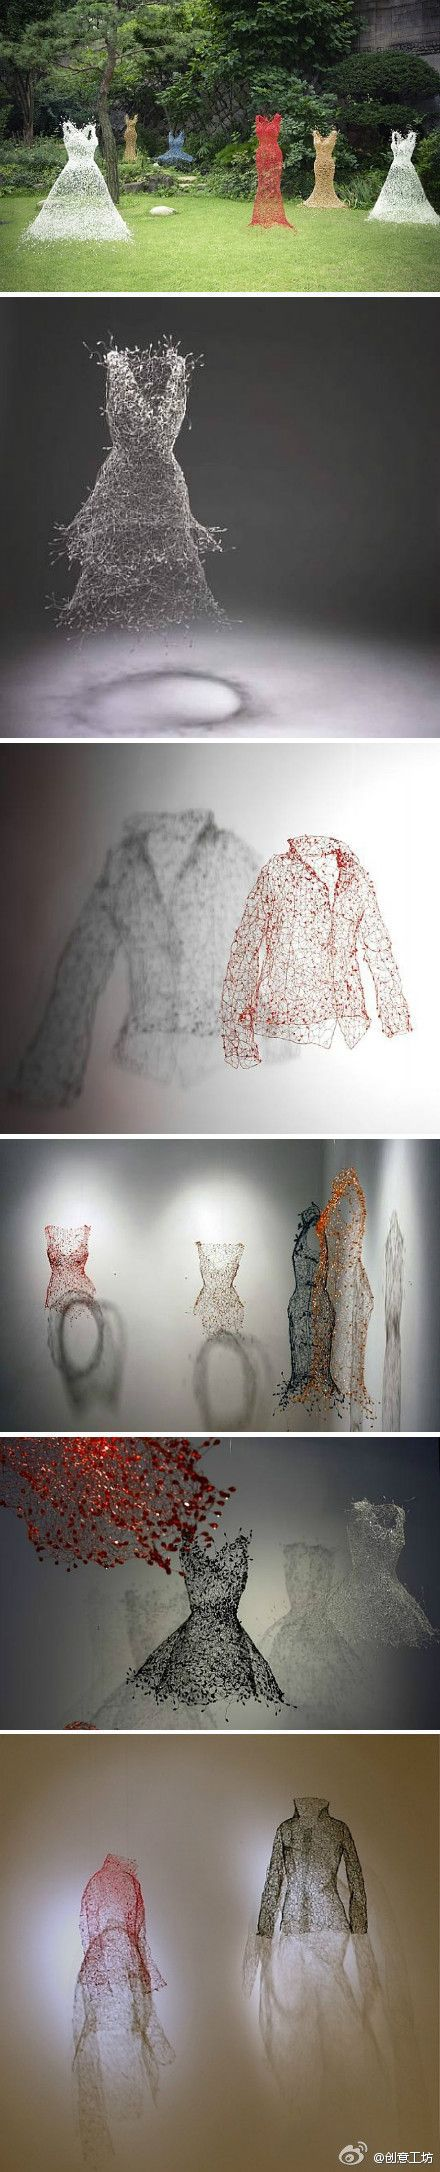 [clothes of life] outh korean artist keysook geum just completed with wire vivid and light evening sculpture series. bubble general suspension. the master of the invisible clothes, but these clothes seemed to be alive.